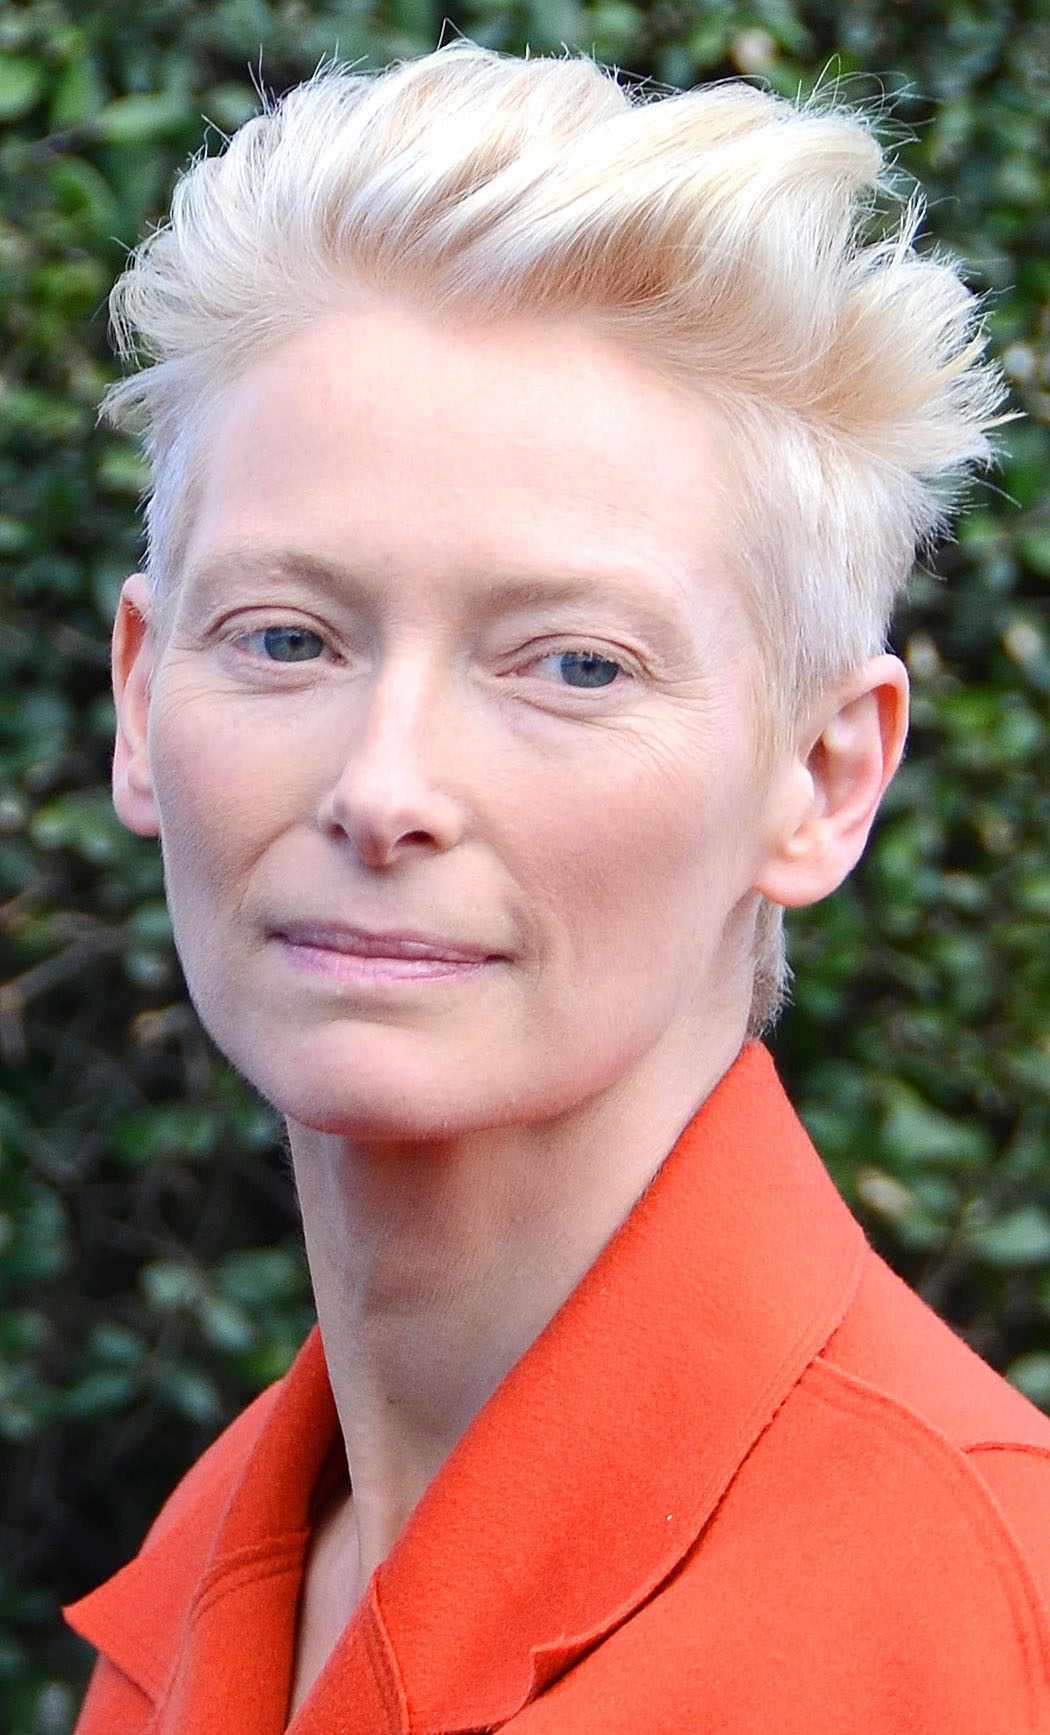 Tilda Swinton earned a 82 million dollar salary, leaving the net worth at 245 million in 2017